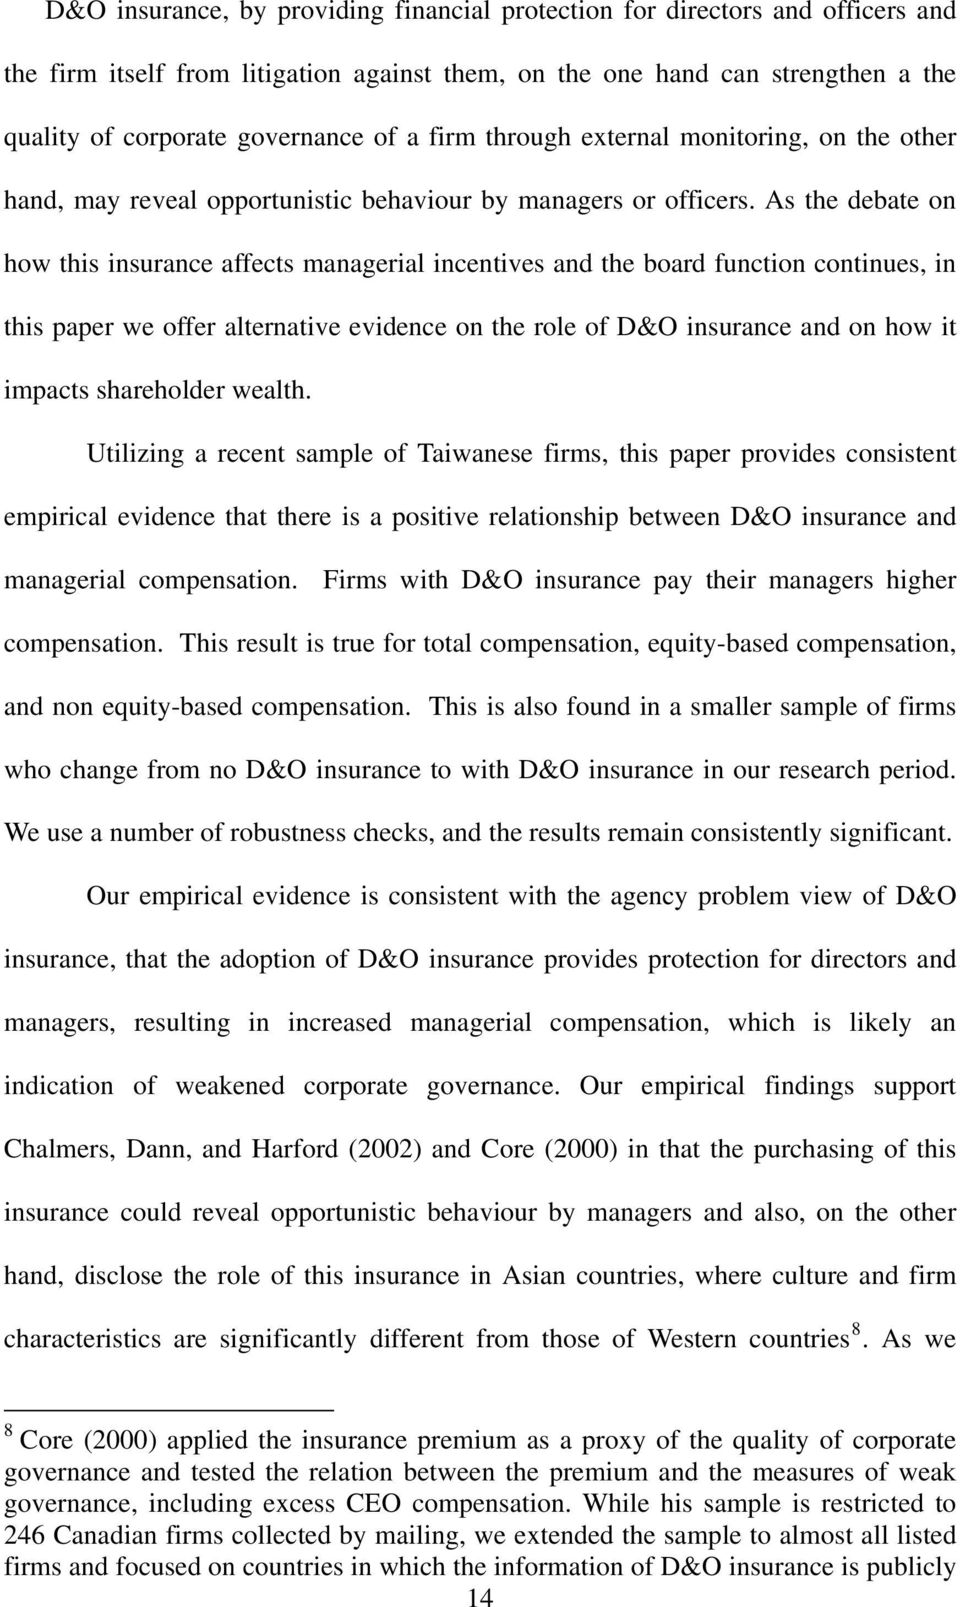 As the debate on how this insurance affects managerial incentives and the board function continues, in this paper we offer alternative evidence on the role of D&O insurance and on how it impacts